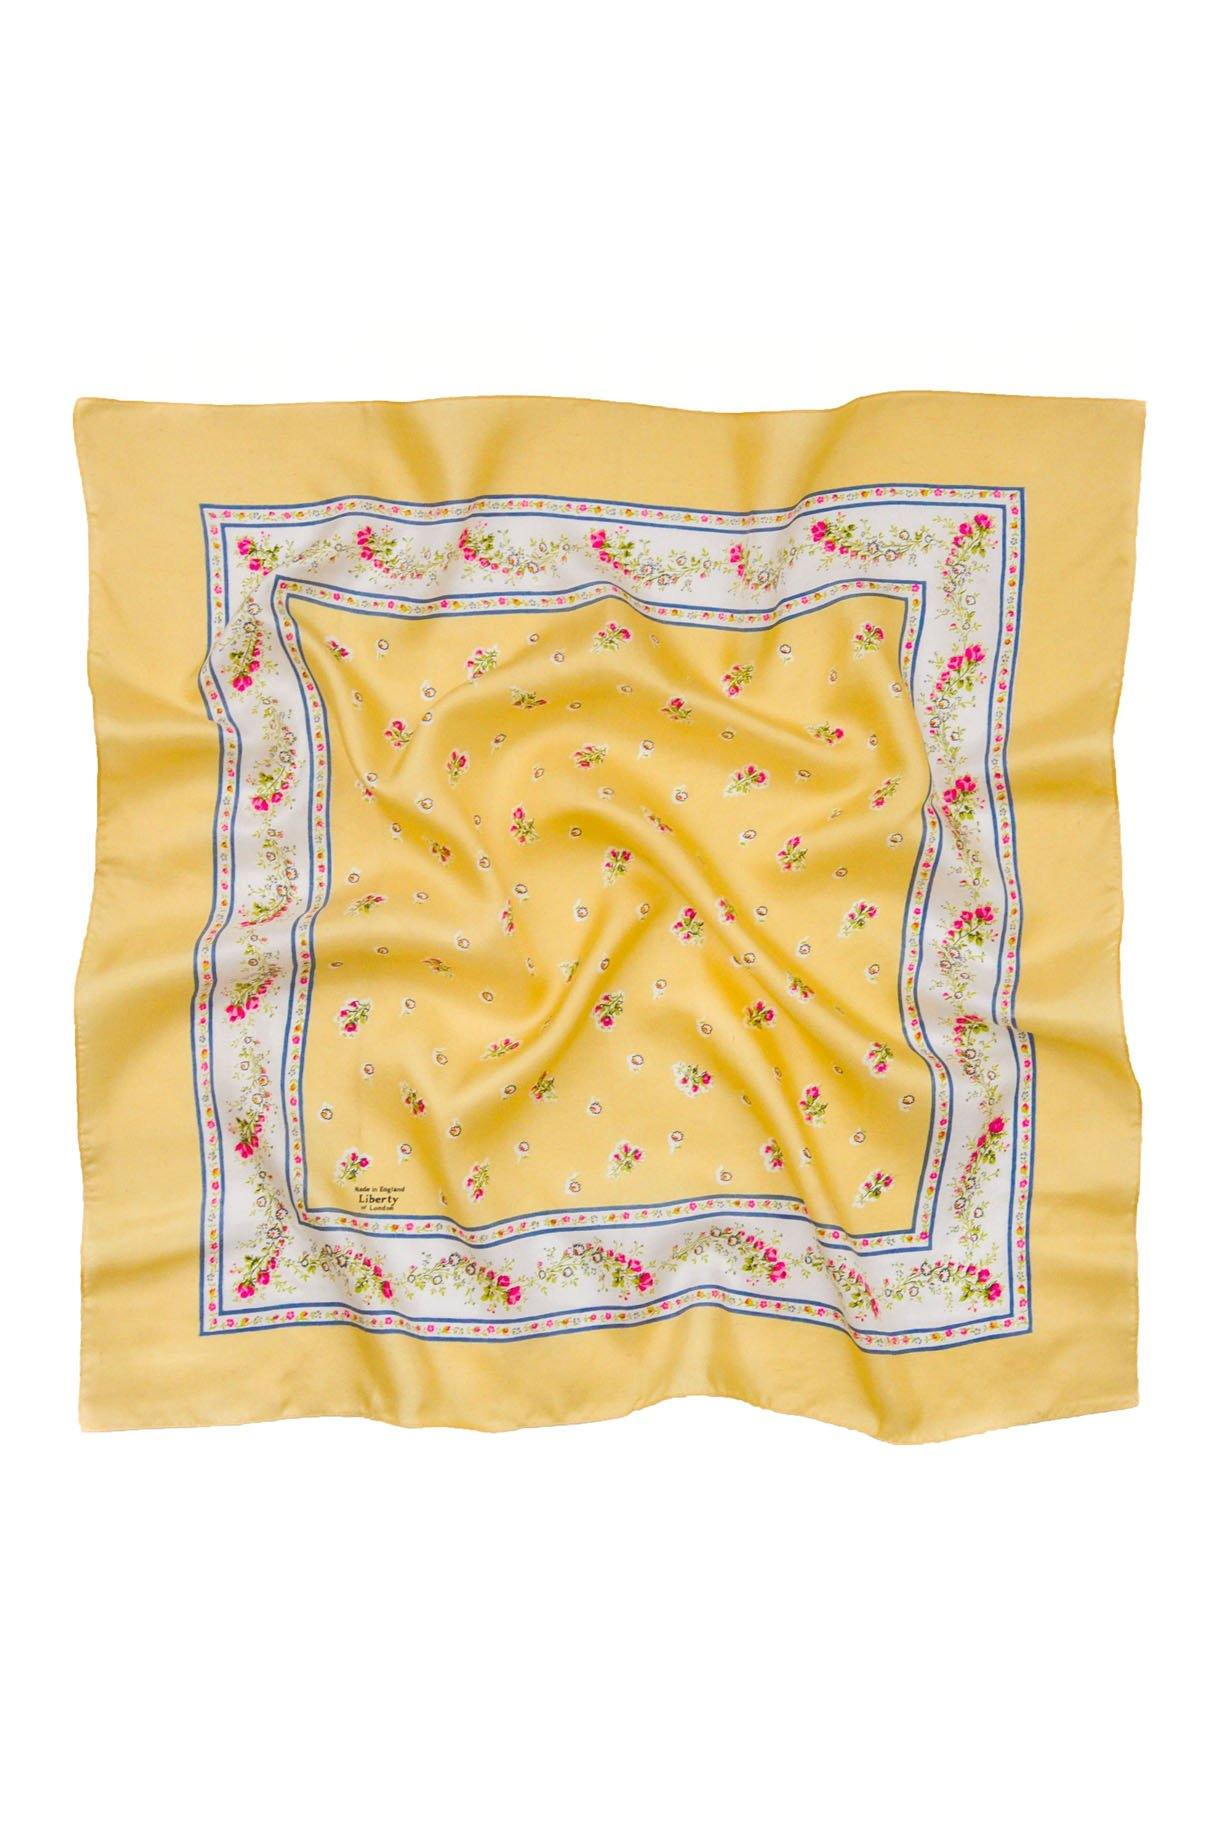 Vintage Liberty of London Yellow Floral Scarf from Sweet and Spark